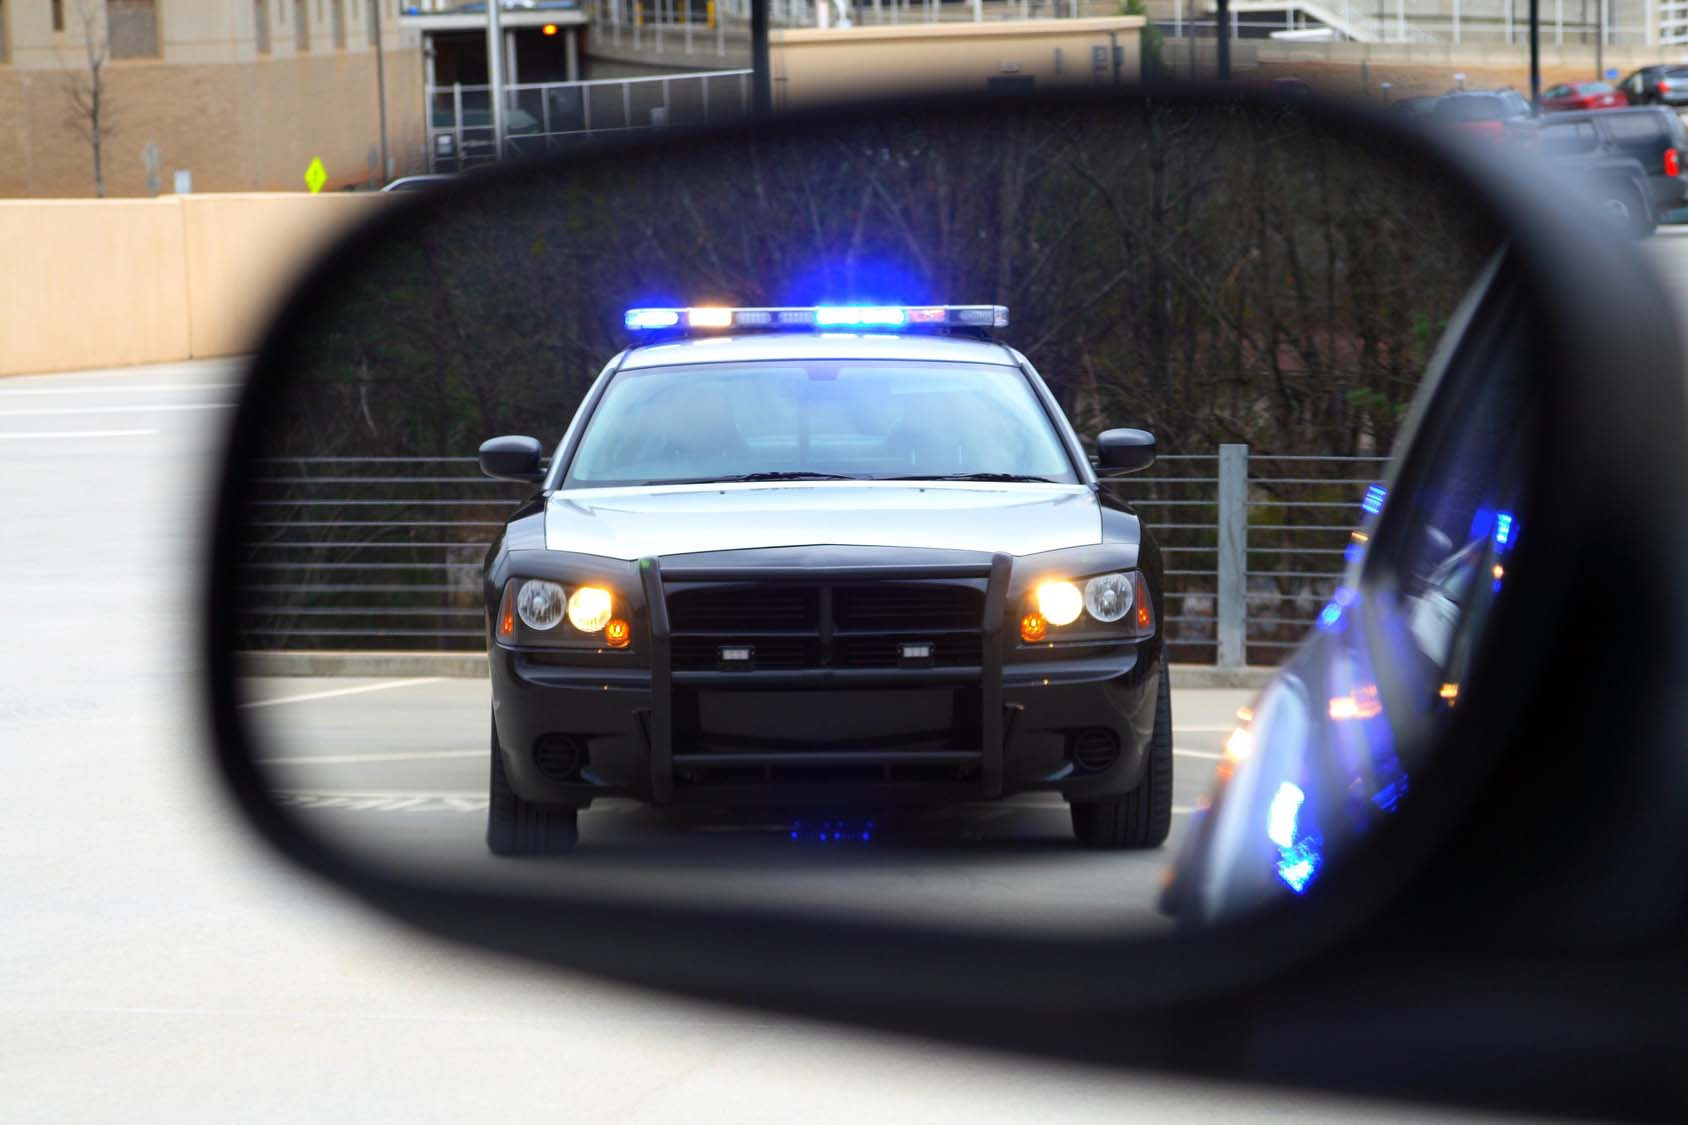 police car in a rear view mirror